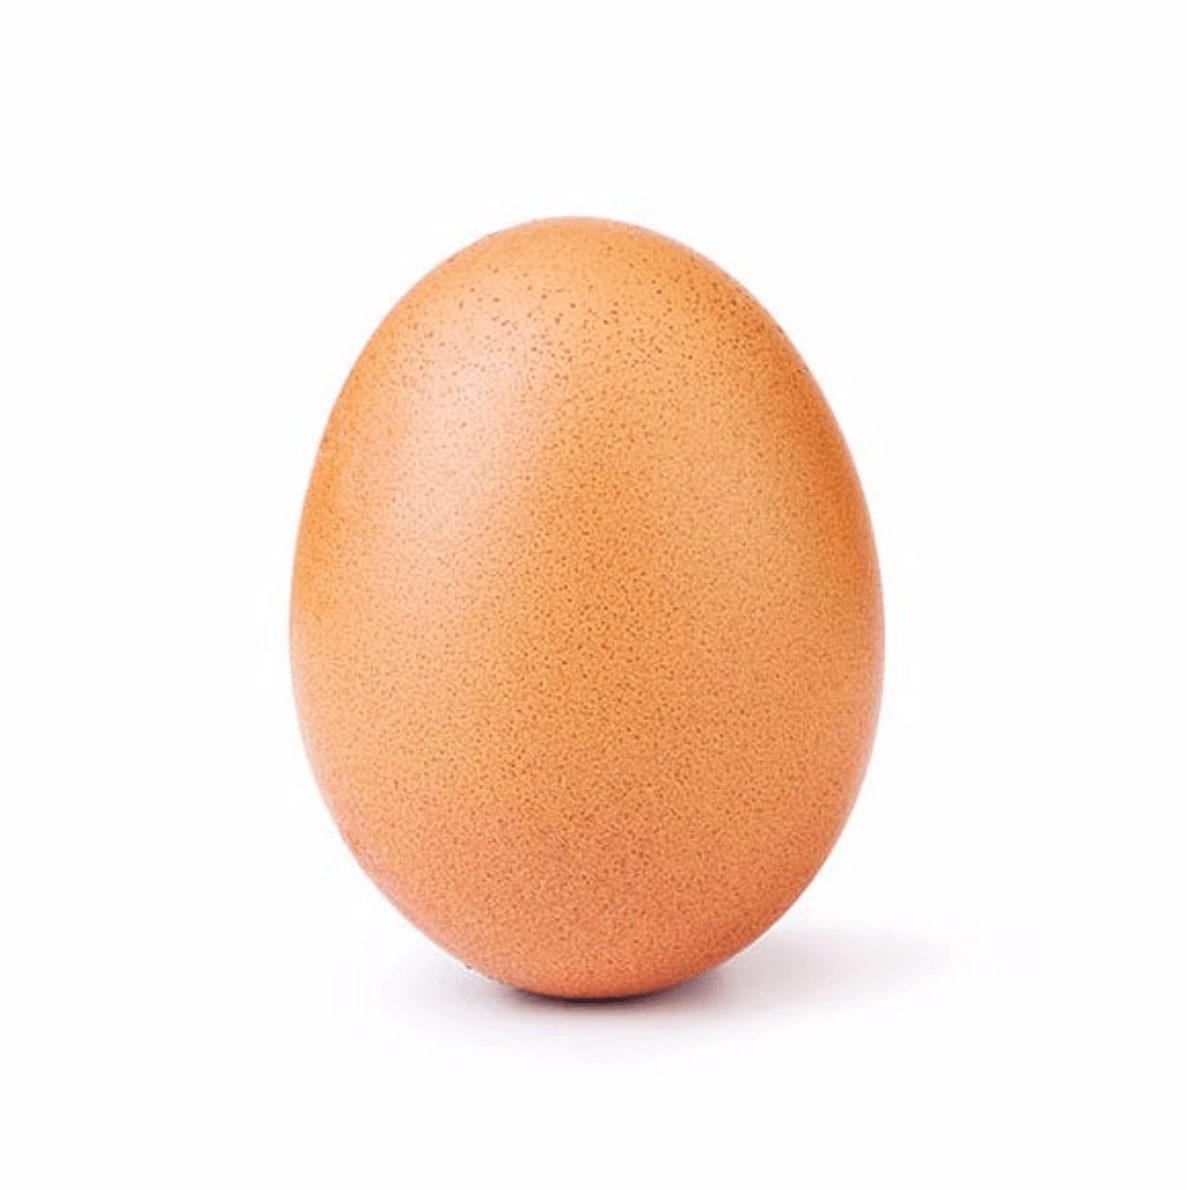 The most liked Instagram post of 2019 by @world_record_egg